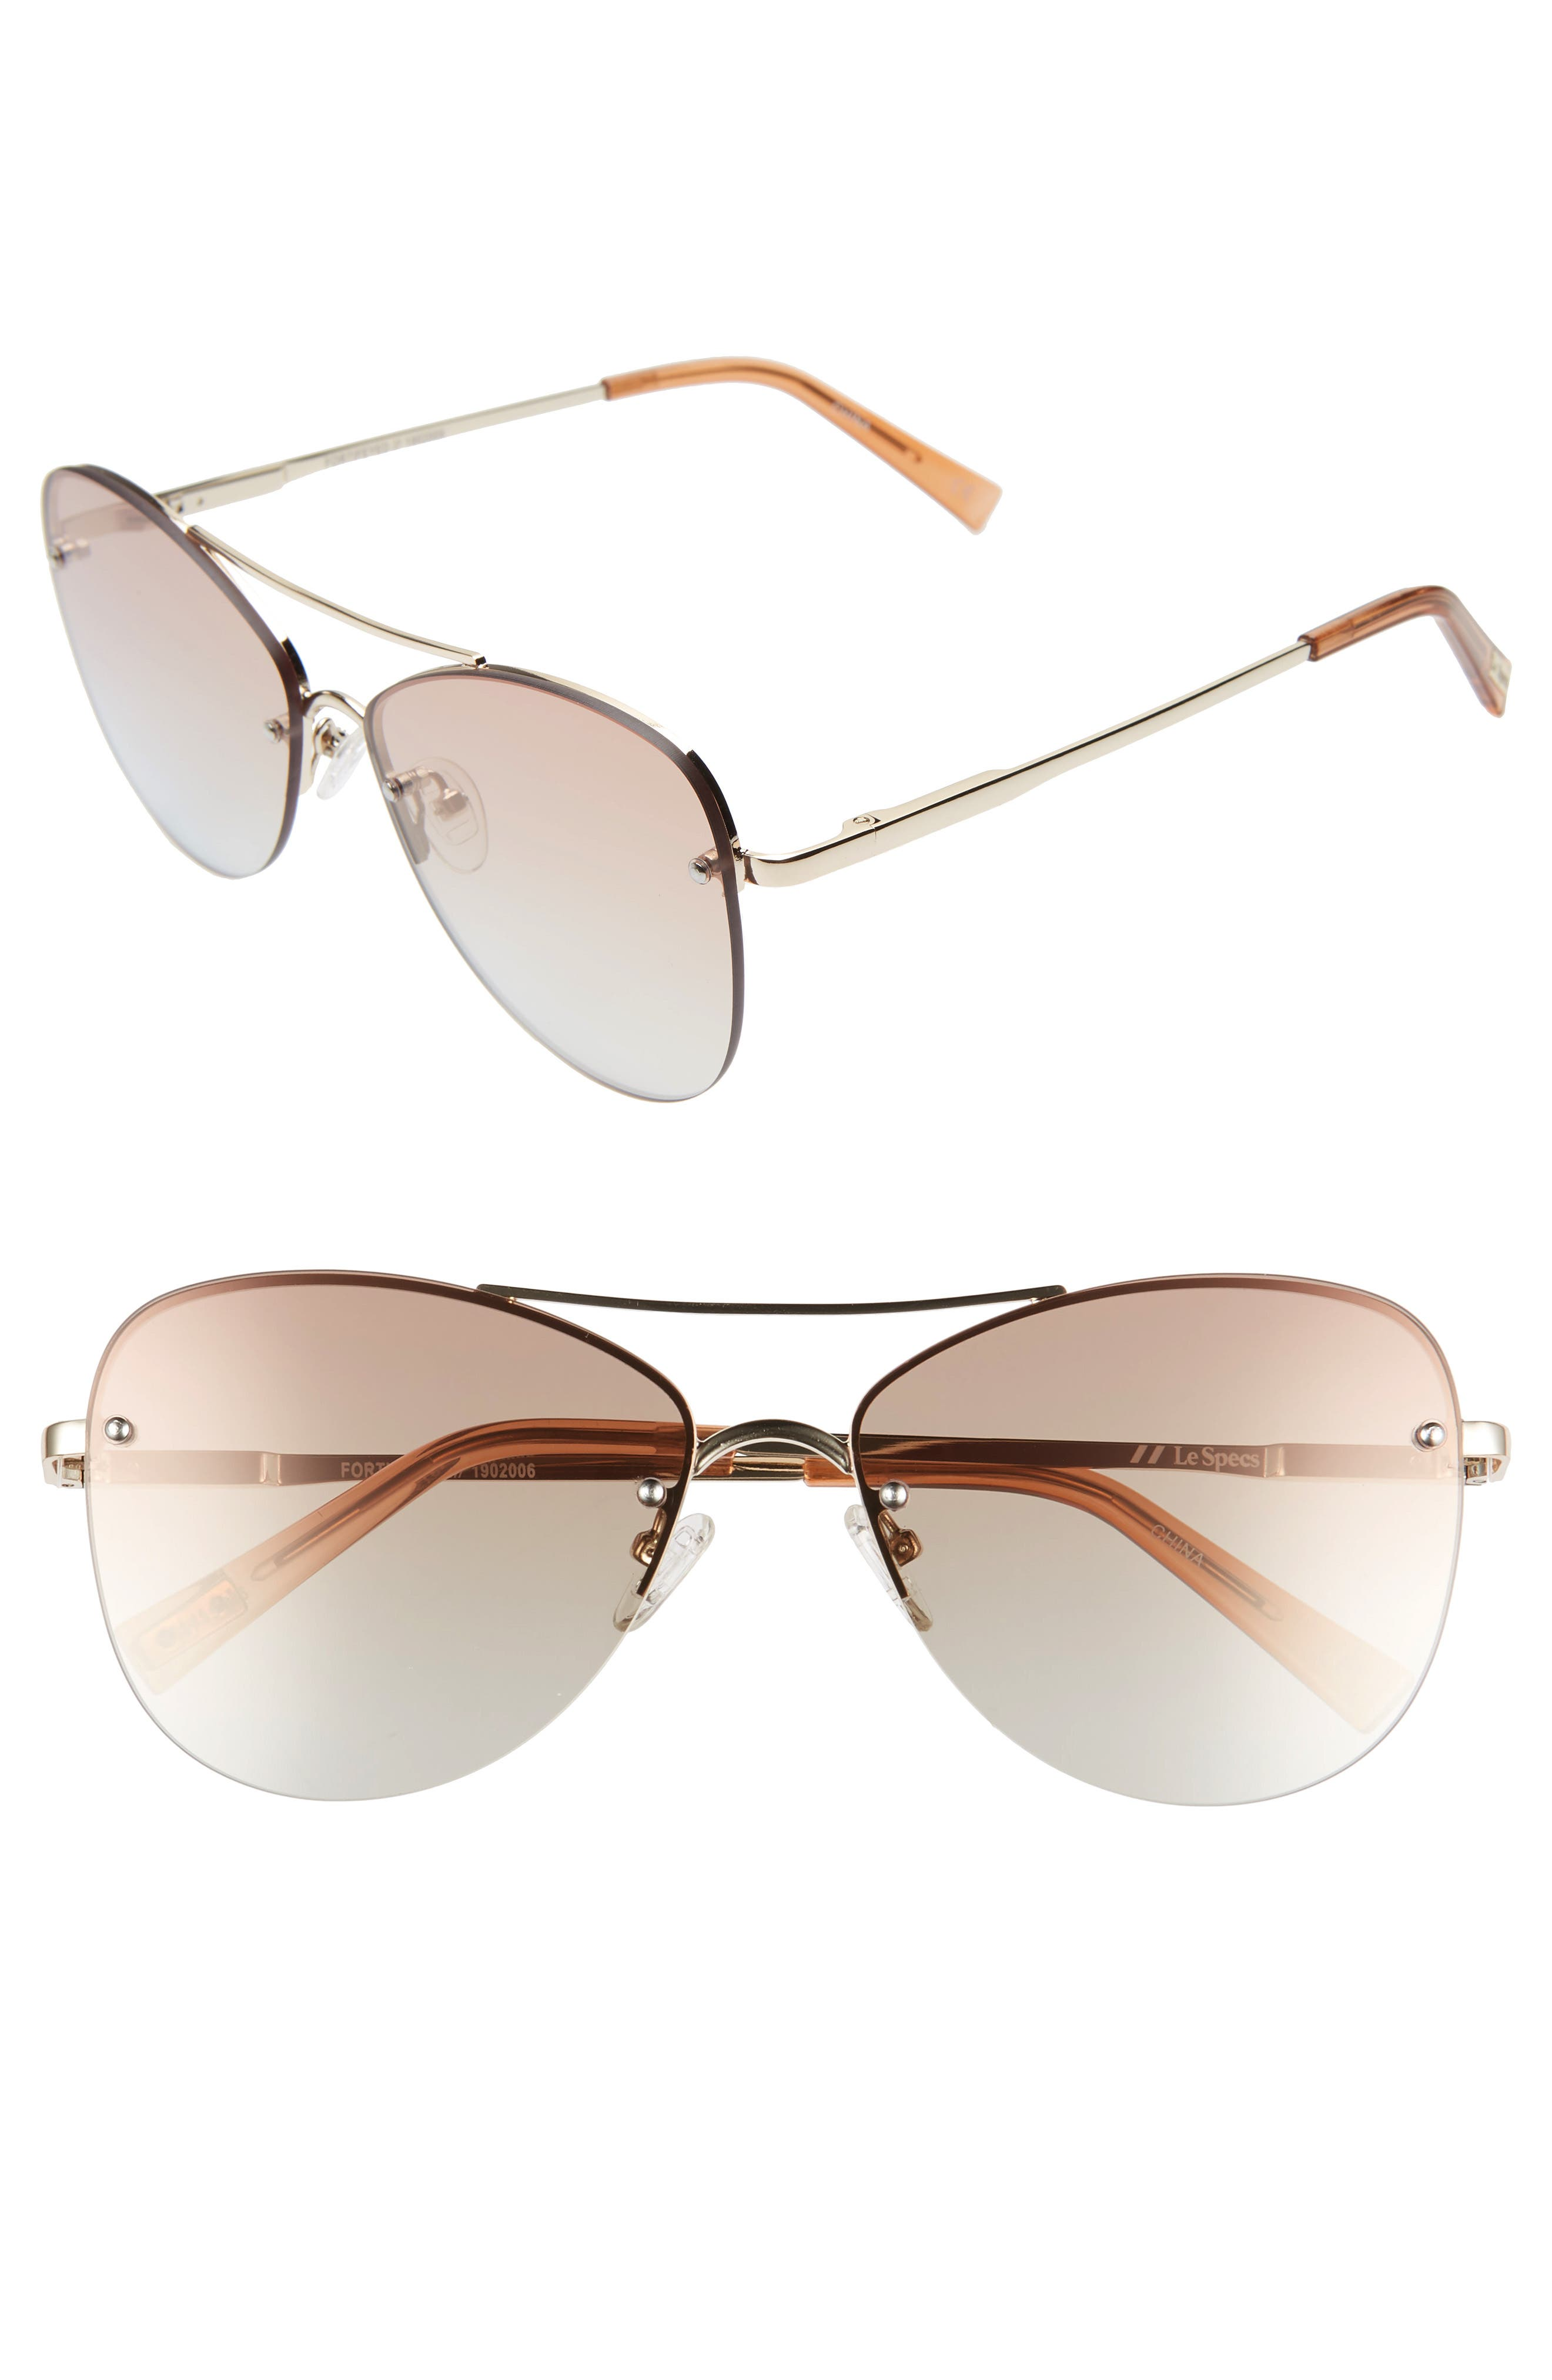 Le Specs Fortifeyed 61Mm Mirrored Aviator Sunglasses - Gold/ Gold Gradient Mirror